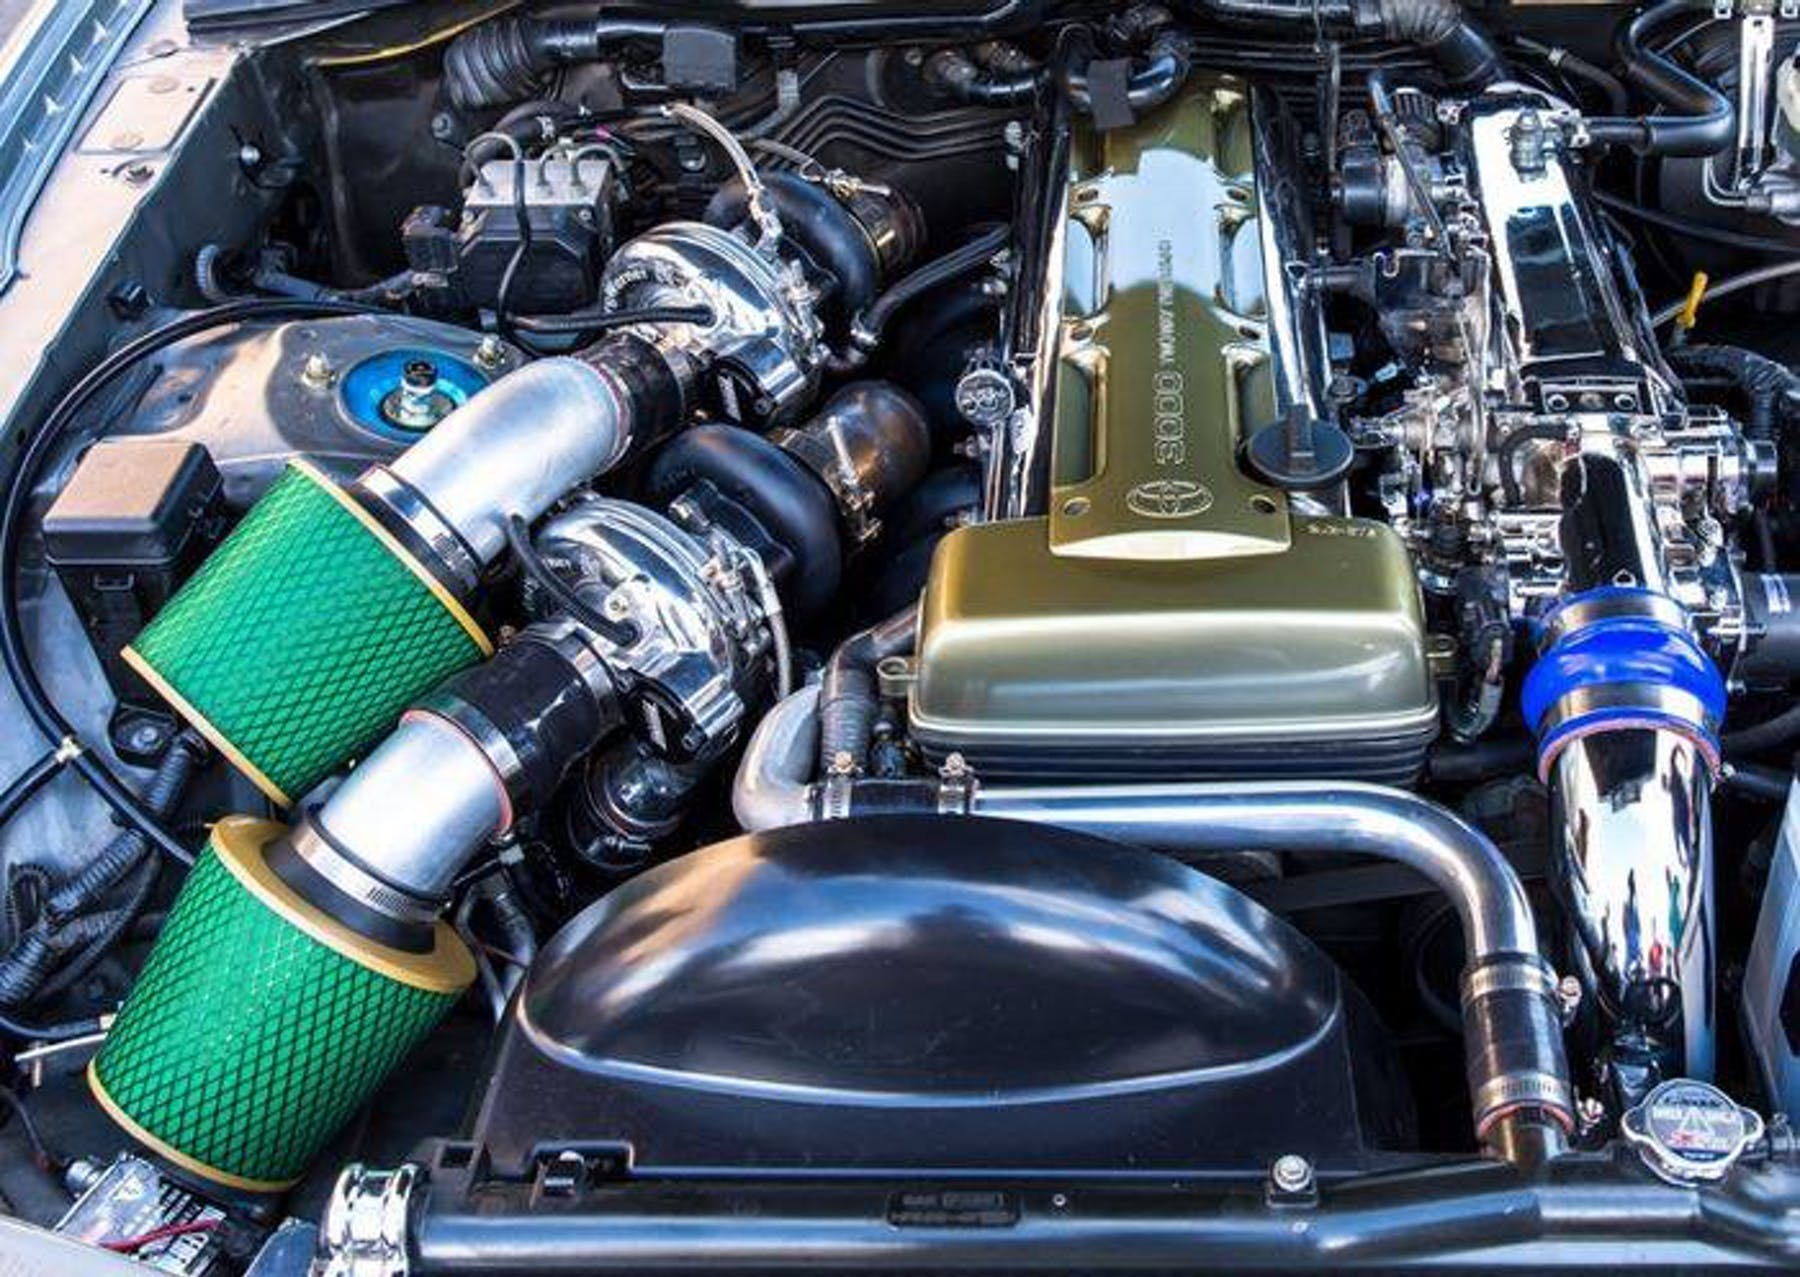 Another of the great Toyota JDM engines